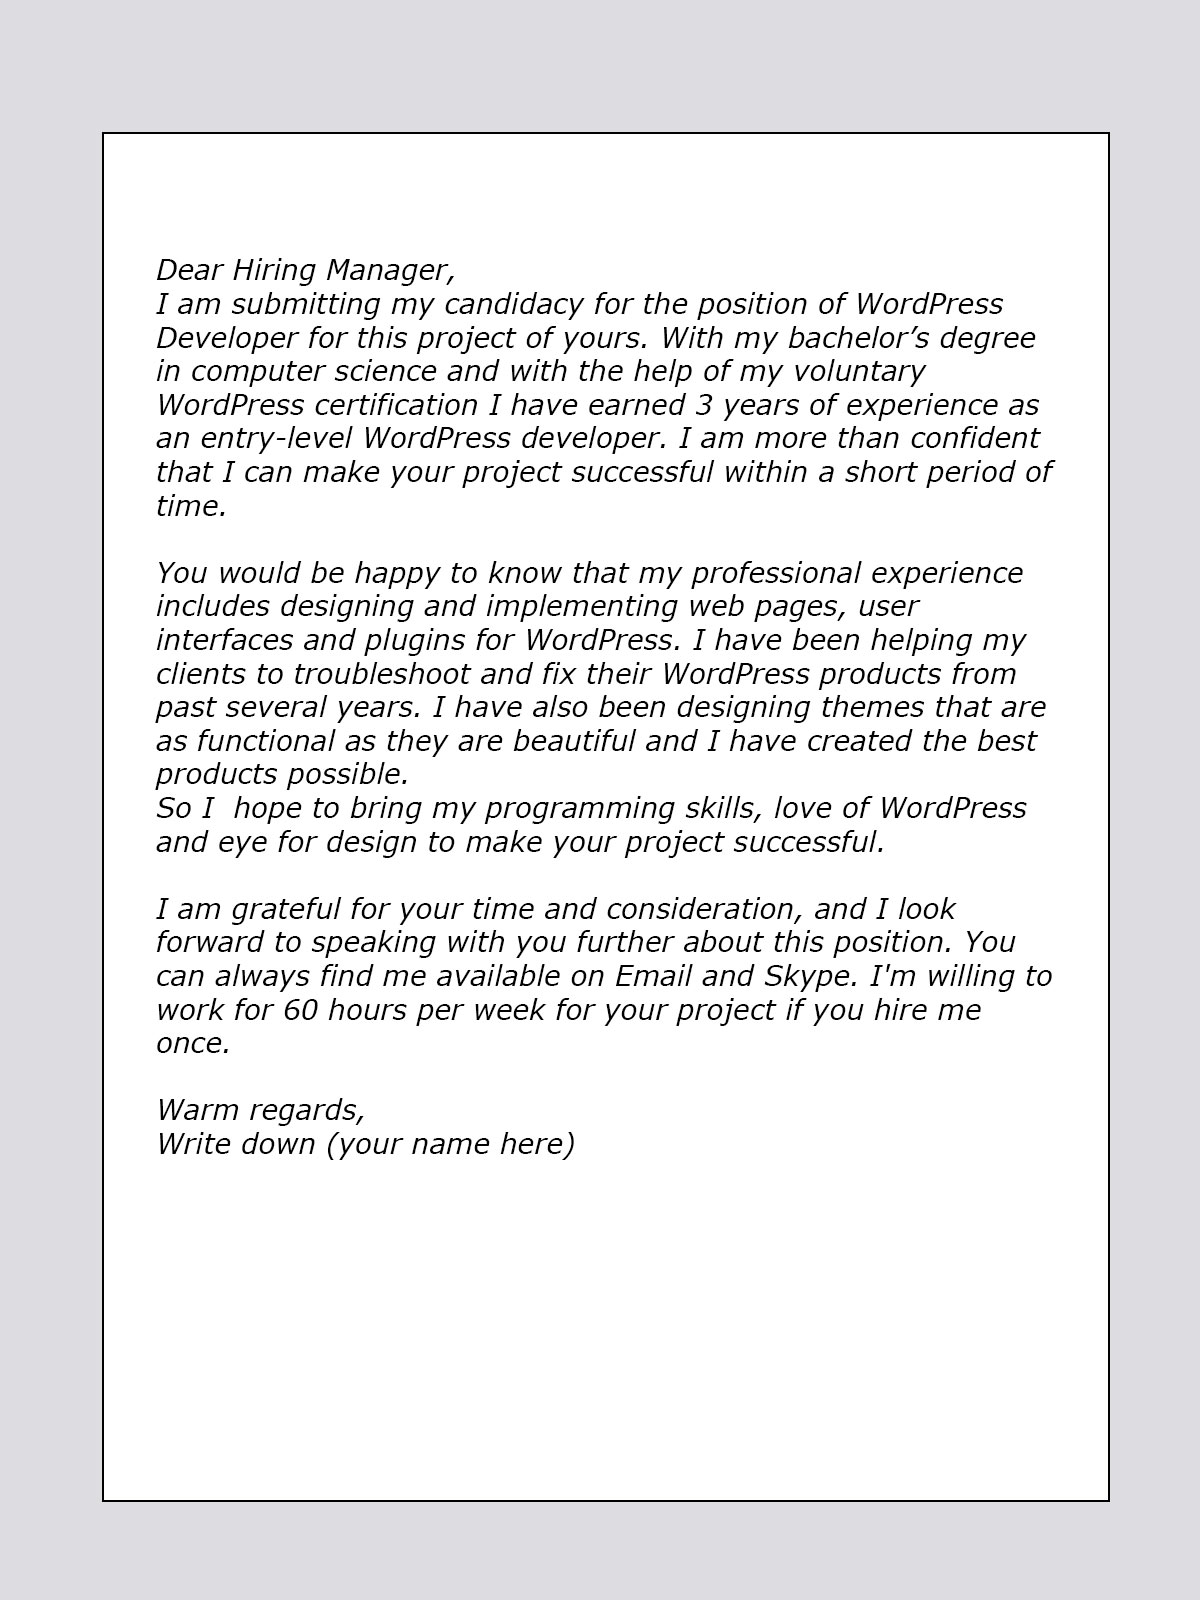 odesk cover letter for wordpress developer